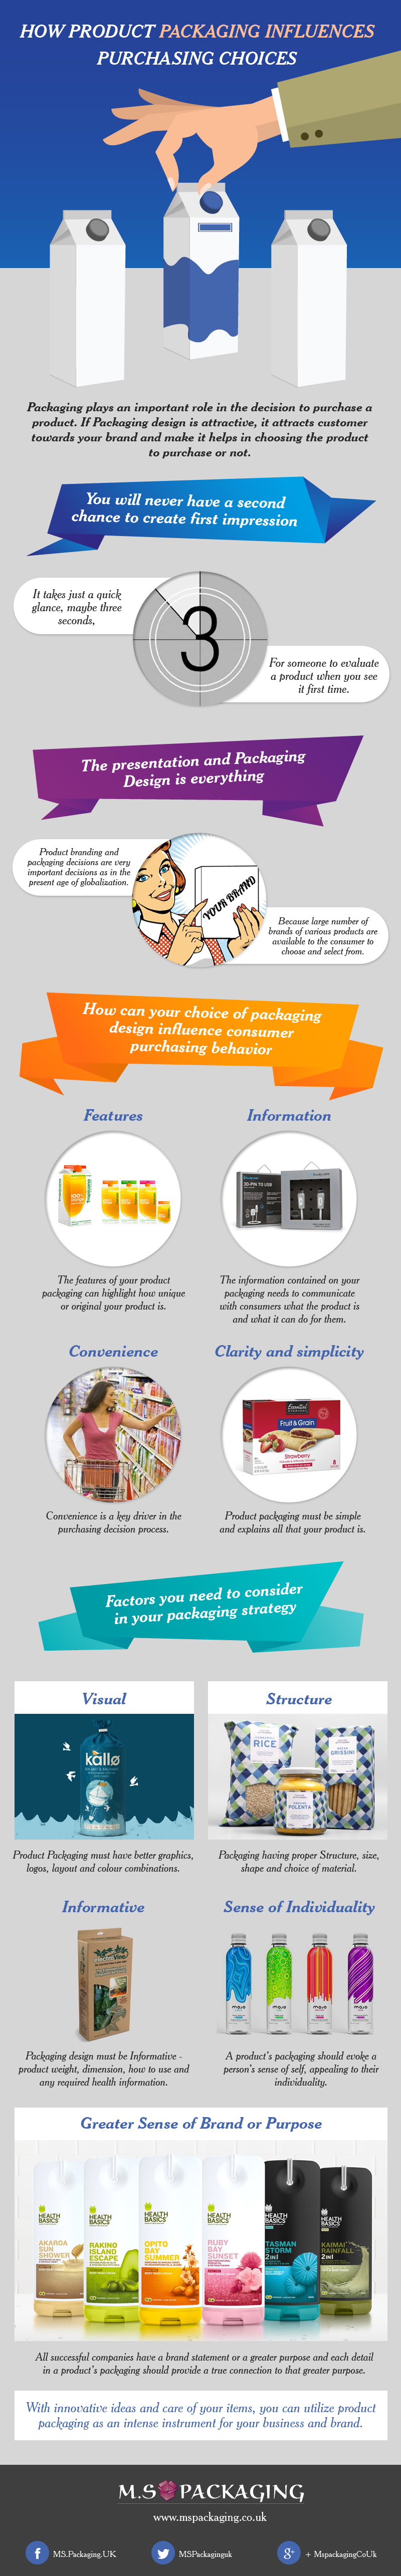 Product Packaging Influences Purchasing Choices [Infographic]